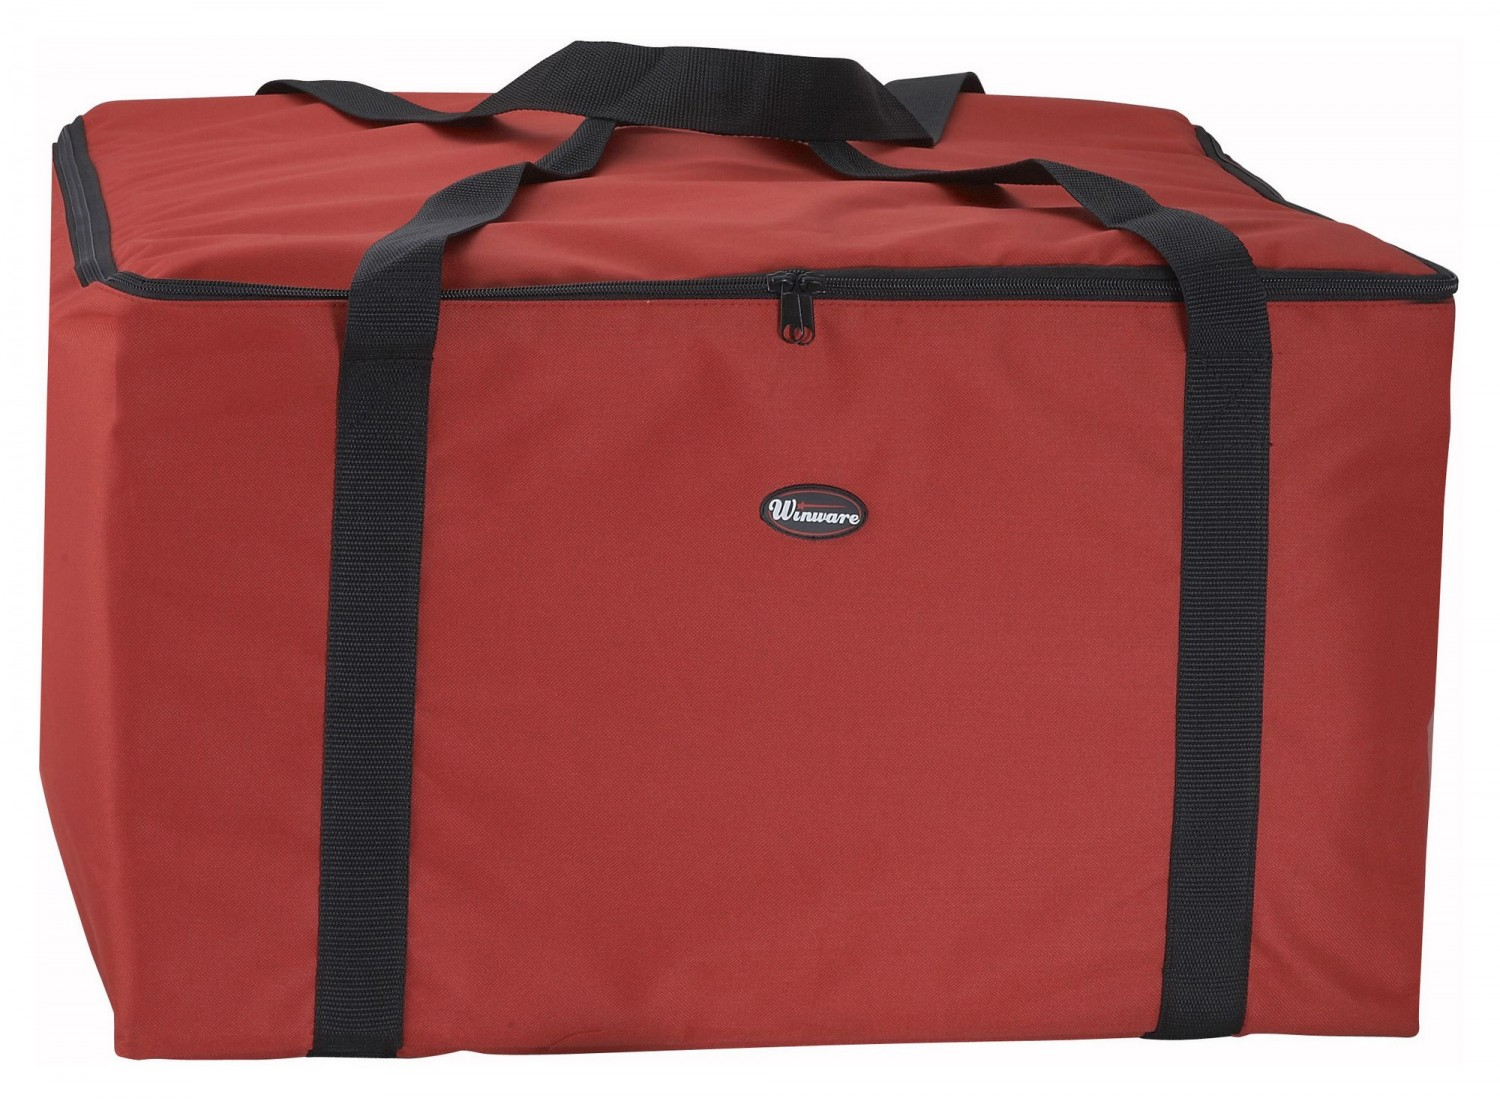 Winco BGDV-22 Pizza Delivery Bag, 22